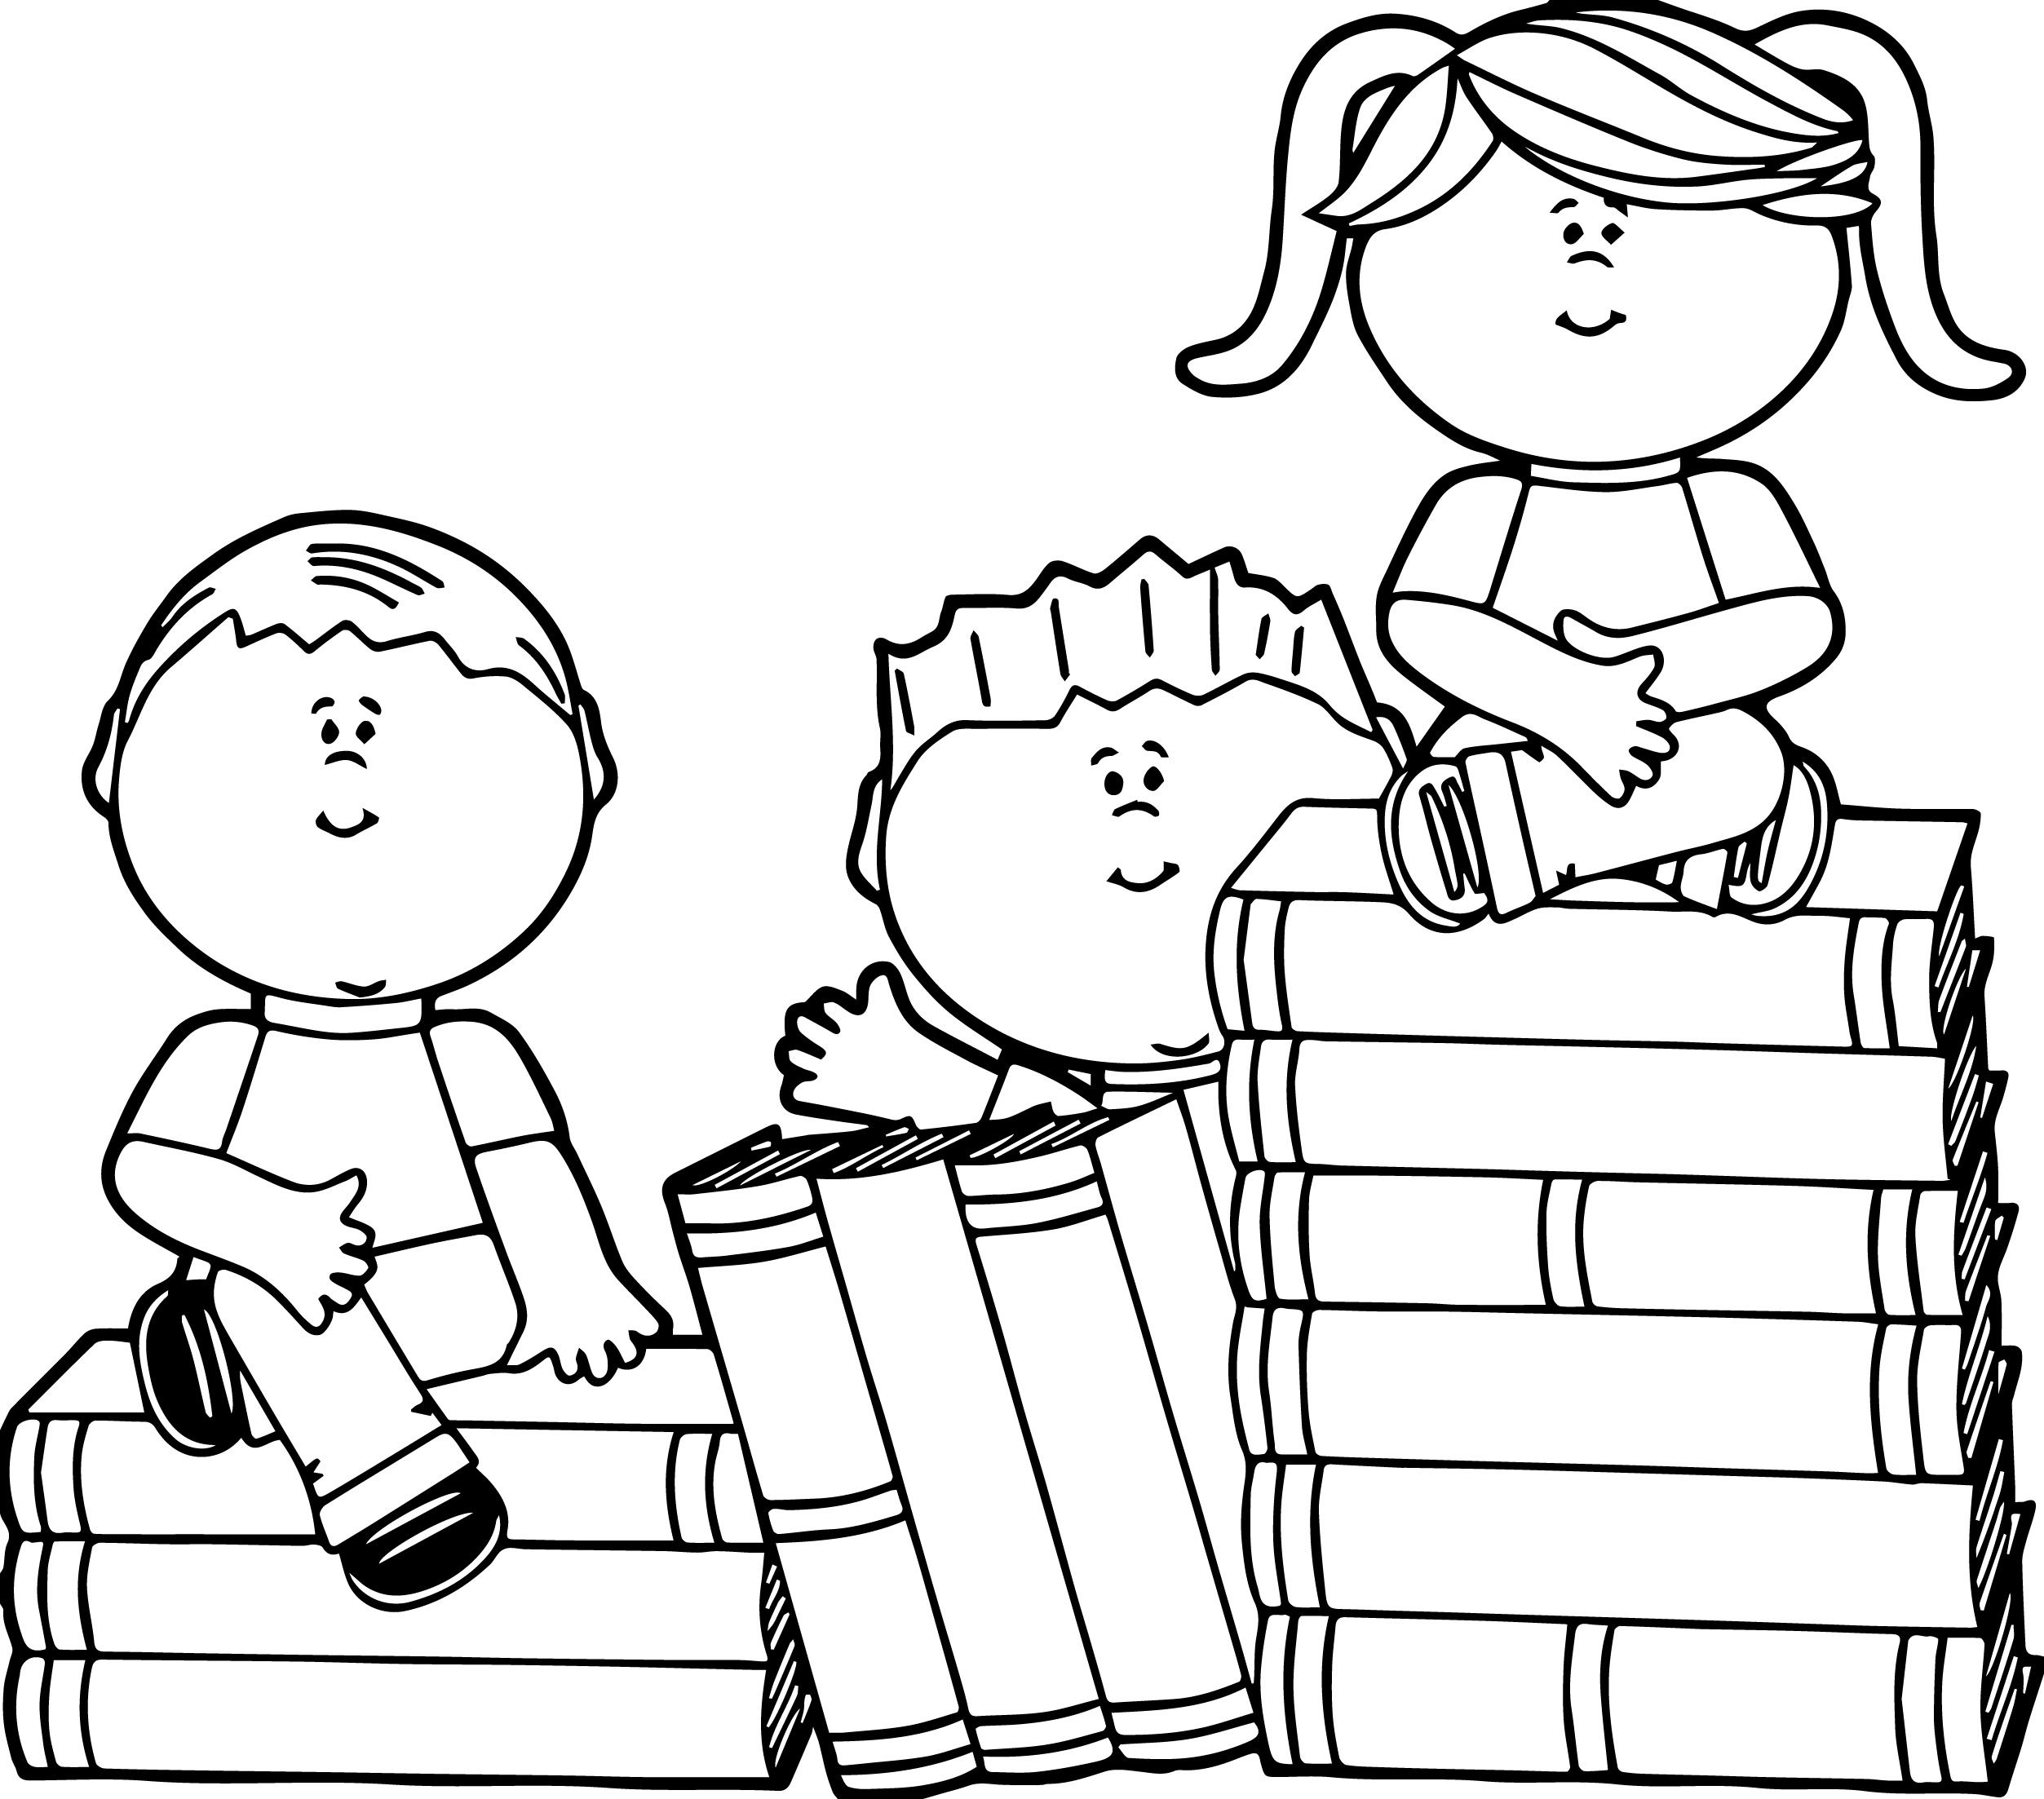 Kids Sitting On Books Kids Coloring Page Coloriage Coloriage Ecole Coloriage Enfant